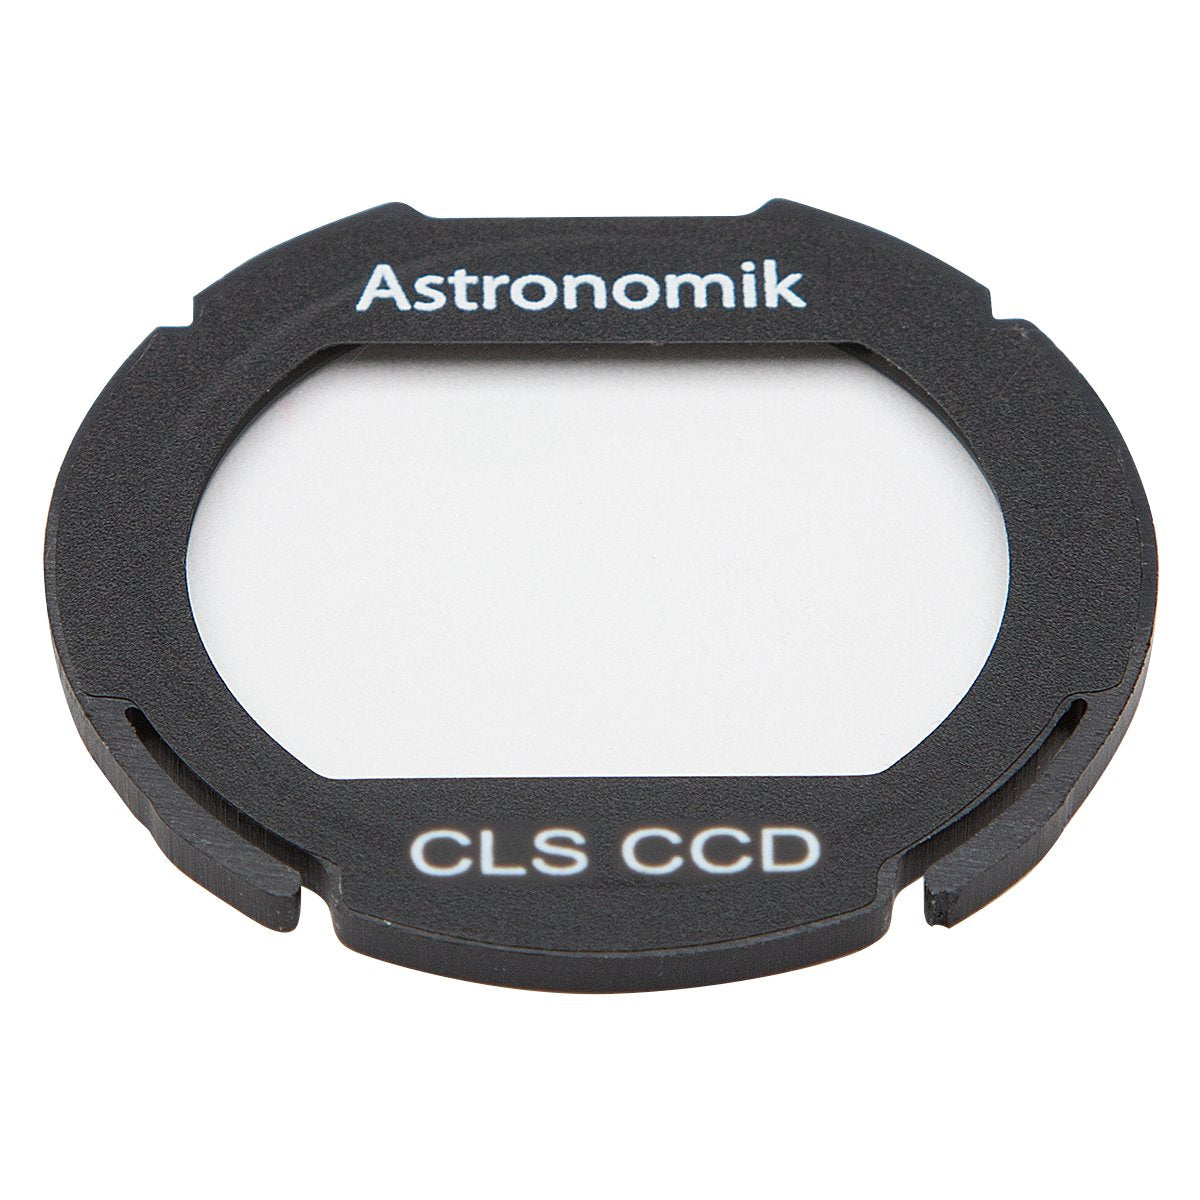 Used Astronomik CLS-CCD for Cameras with IR Filter Removed - Canon EOS APS Clip